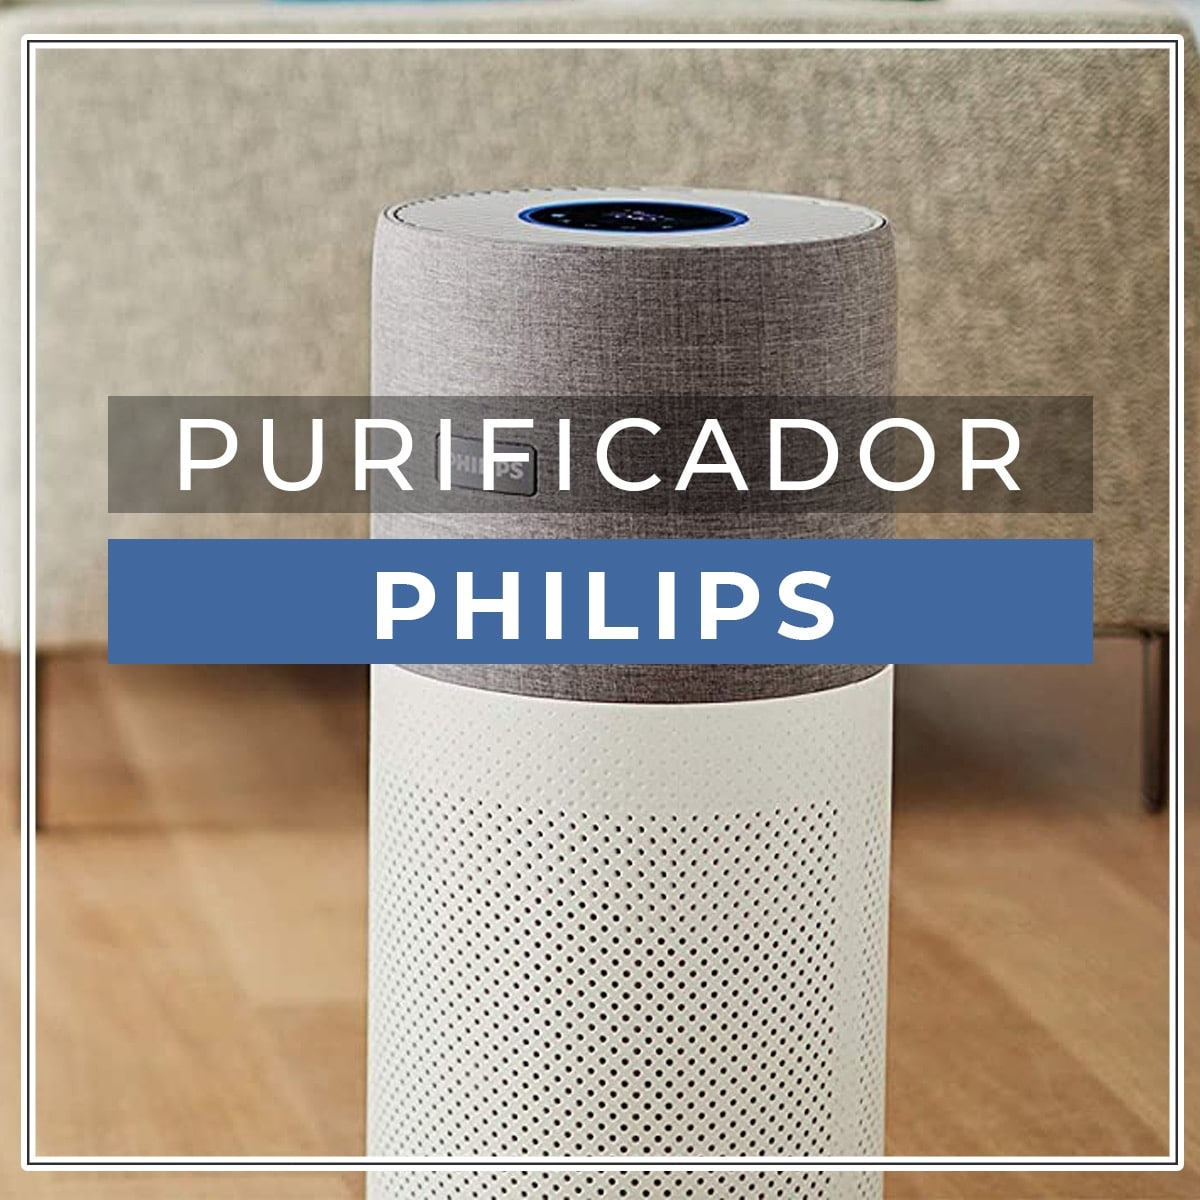 purificador philips